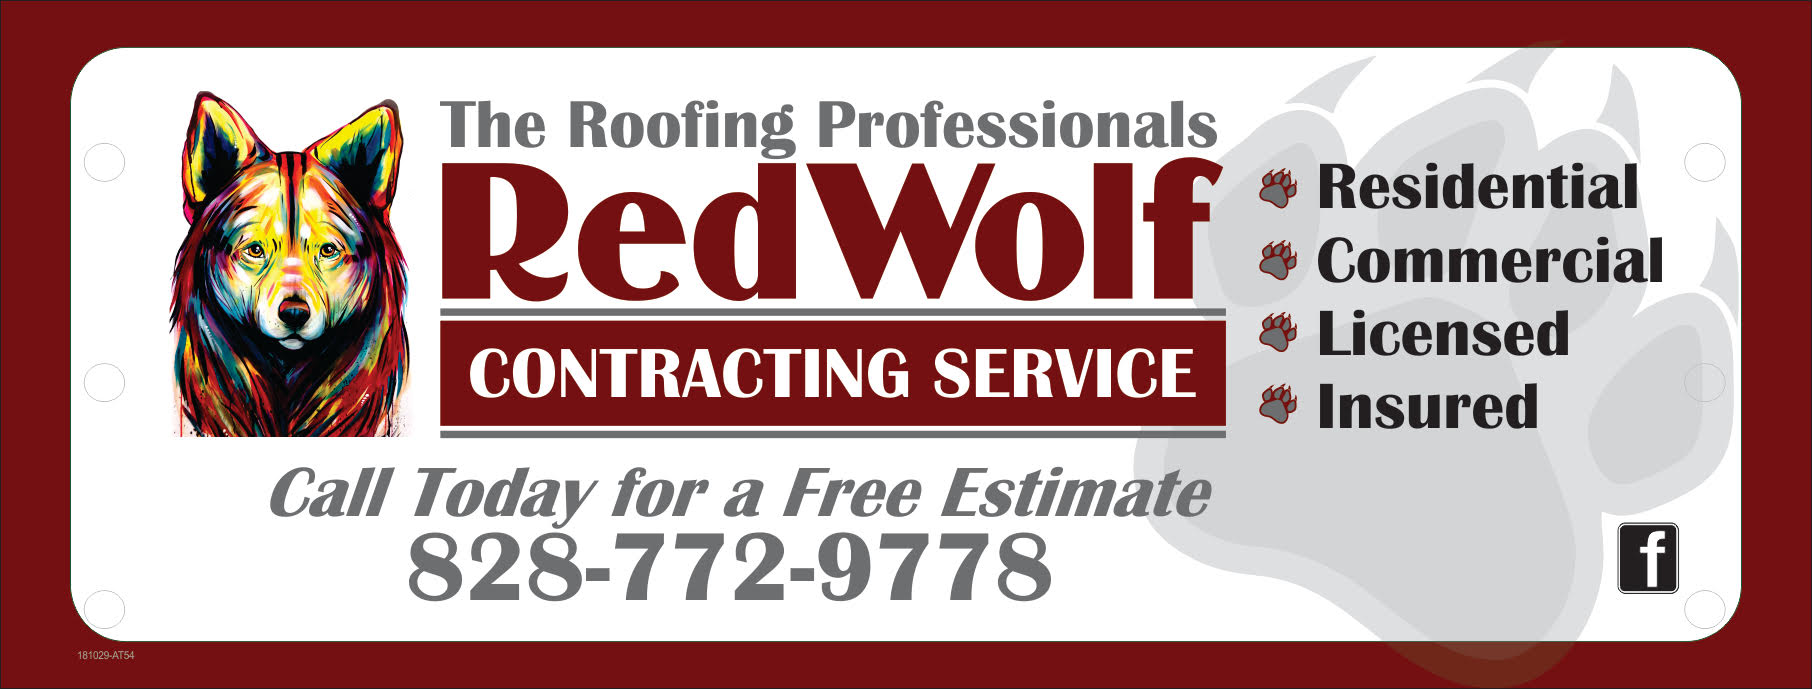 Needing your roof replaced?  Matt of RedWolf Contracting Service is that man to call!  He has the experience and necessary to complete your job, and can provide countless references to his good name.  Give him a call (828)772-9778 to set up your free roof inspection today or visit their website  www.nc-roofers.com .